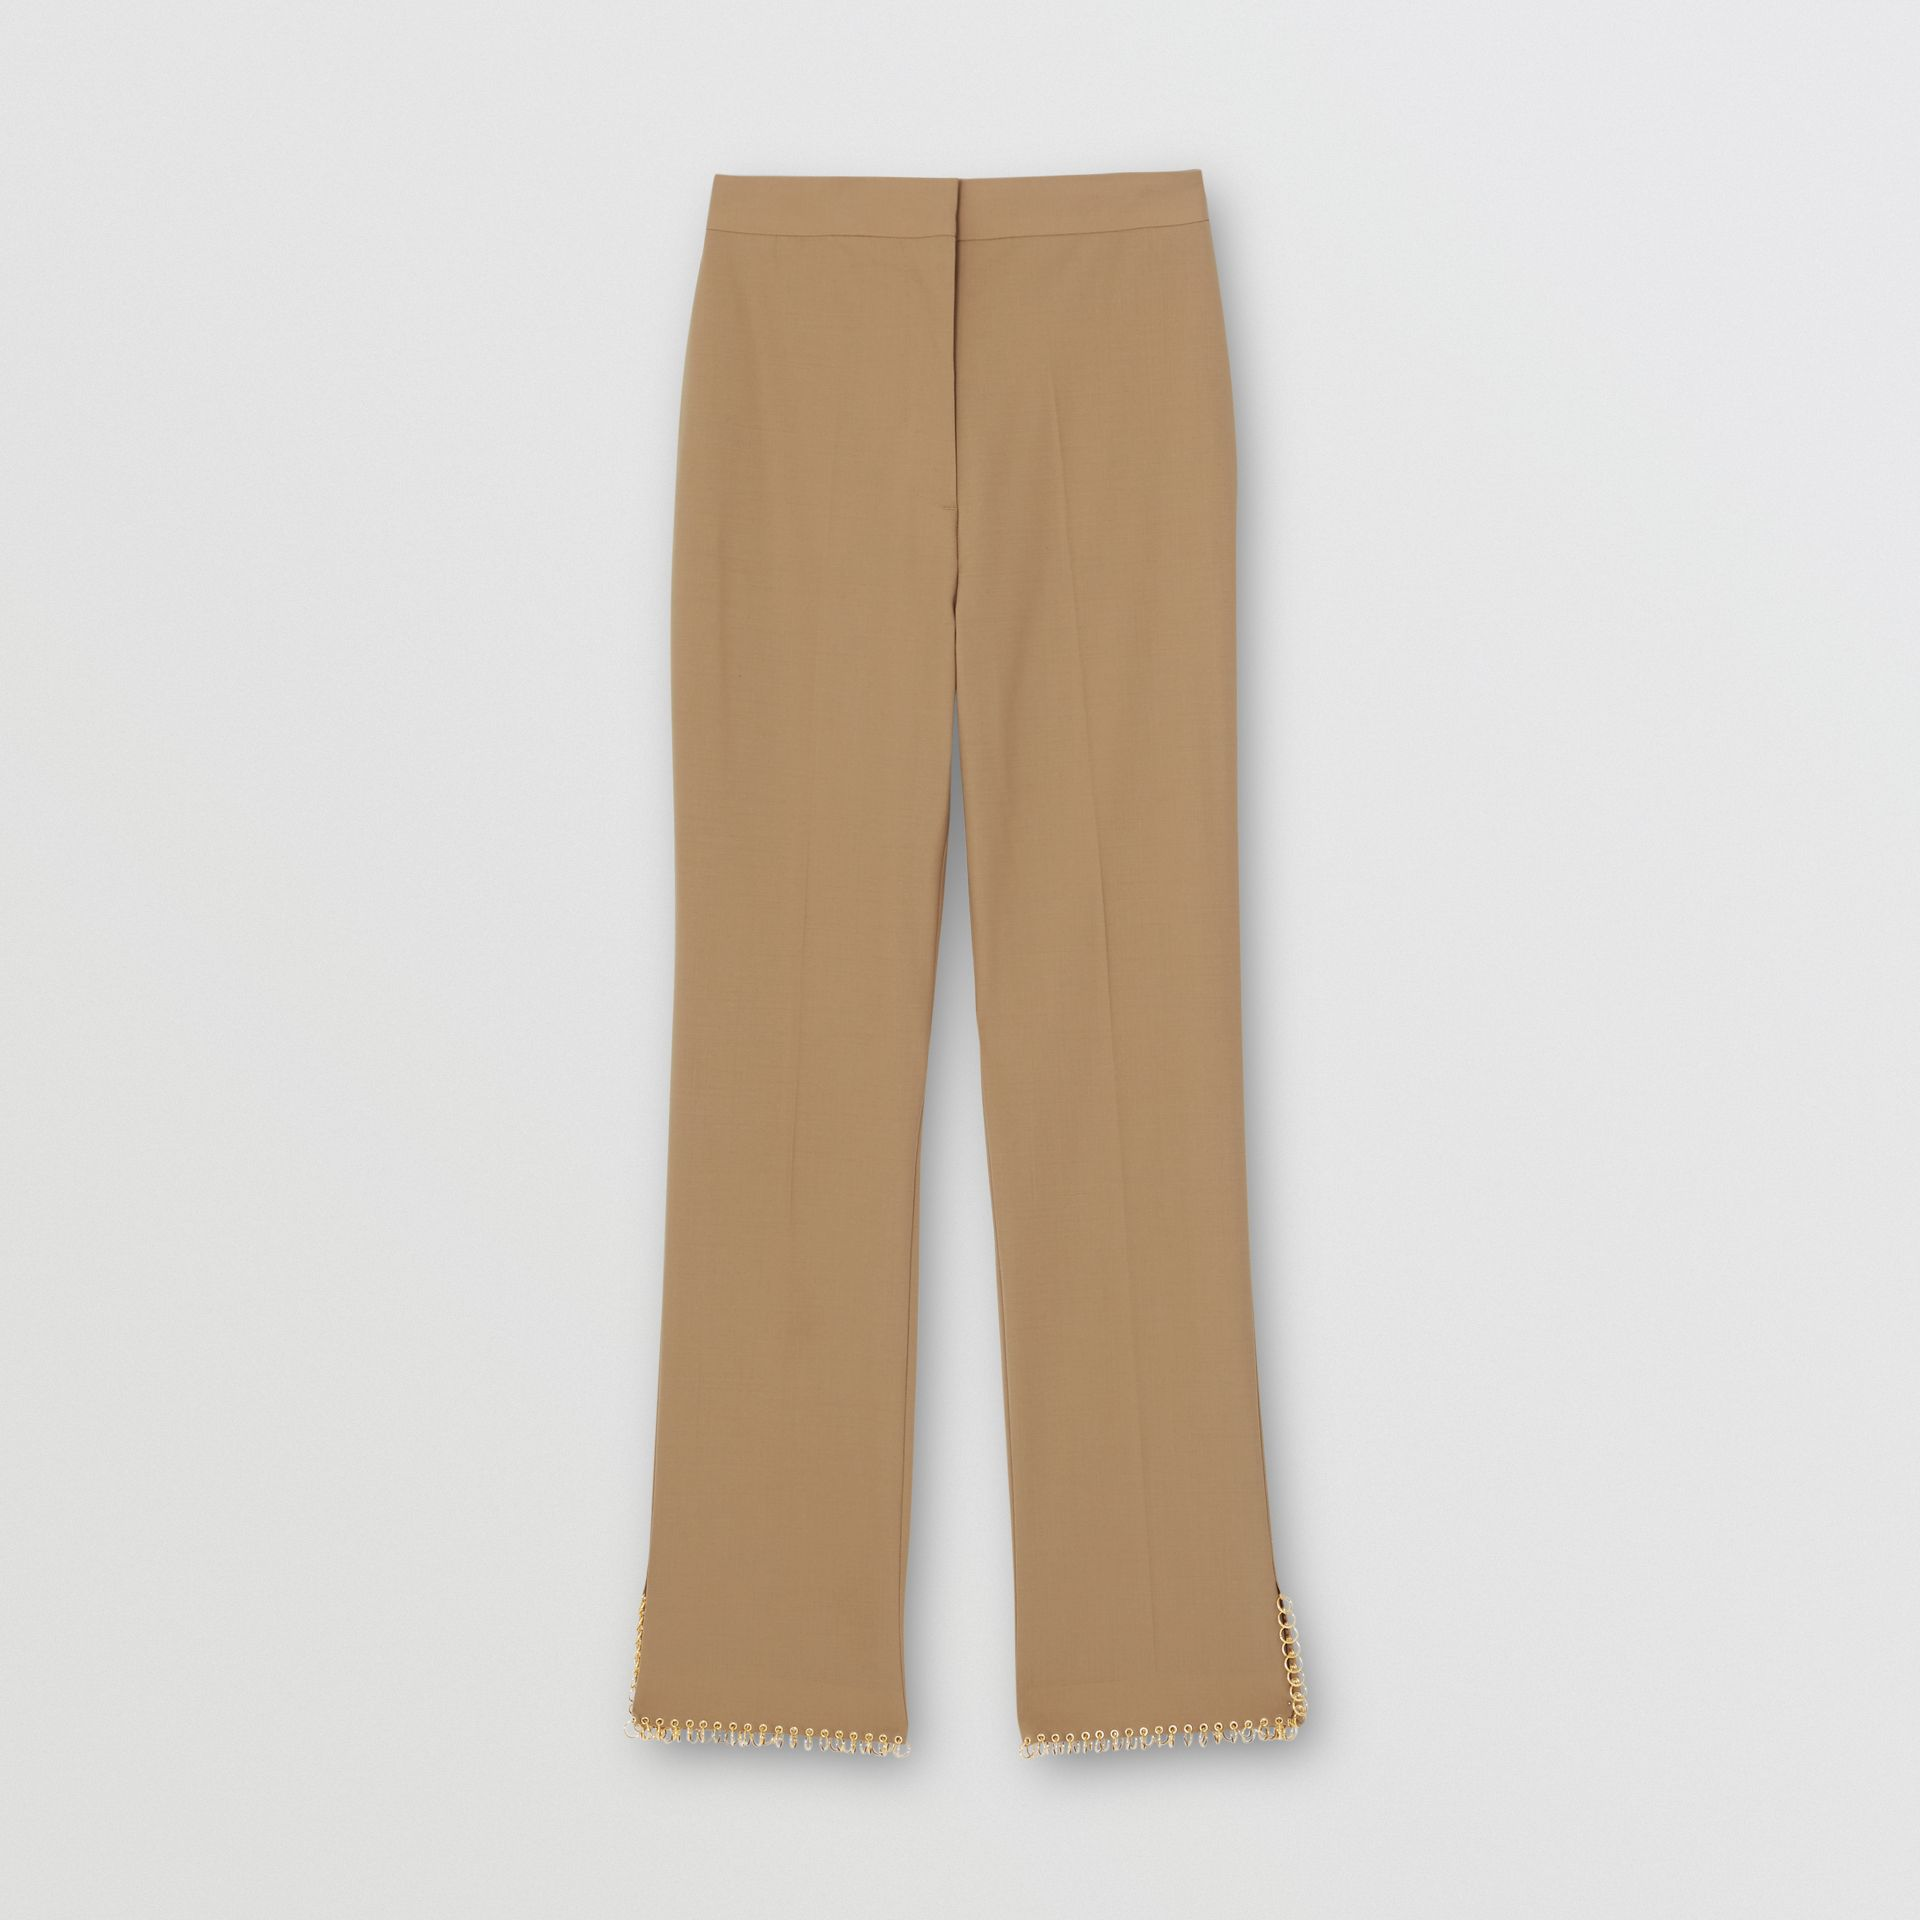 Ring-pierced Wool Trousers in Honey - Women | Burberry United States - gallery image 3